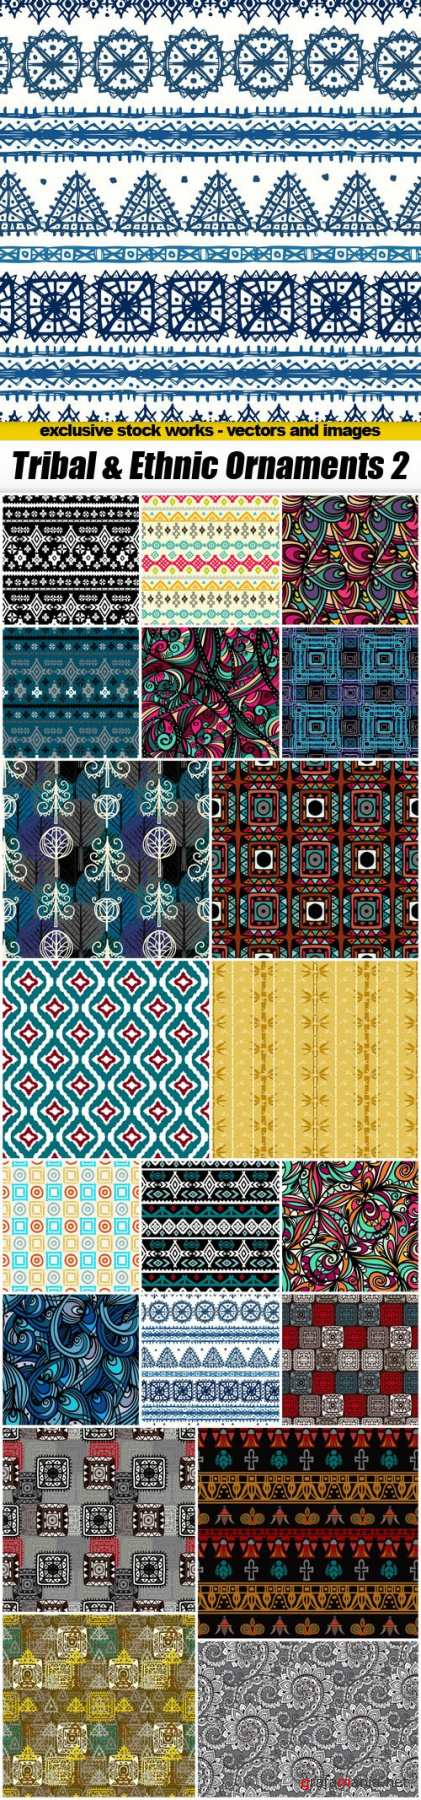 Tribal & Ethnic Ornaments 2 - 20xEPS